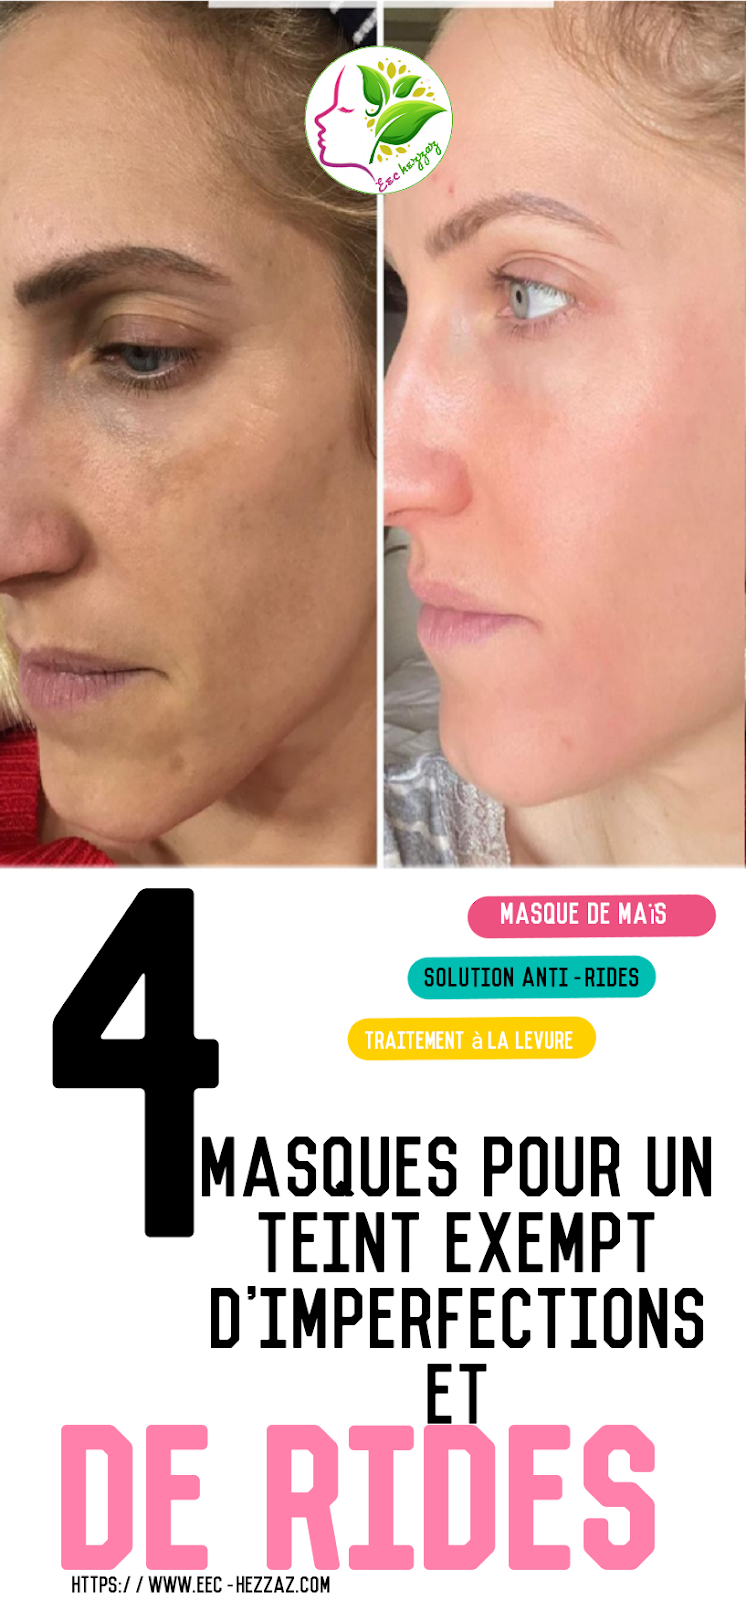 4 masques pour un teint exempt d'imperfections et de rides